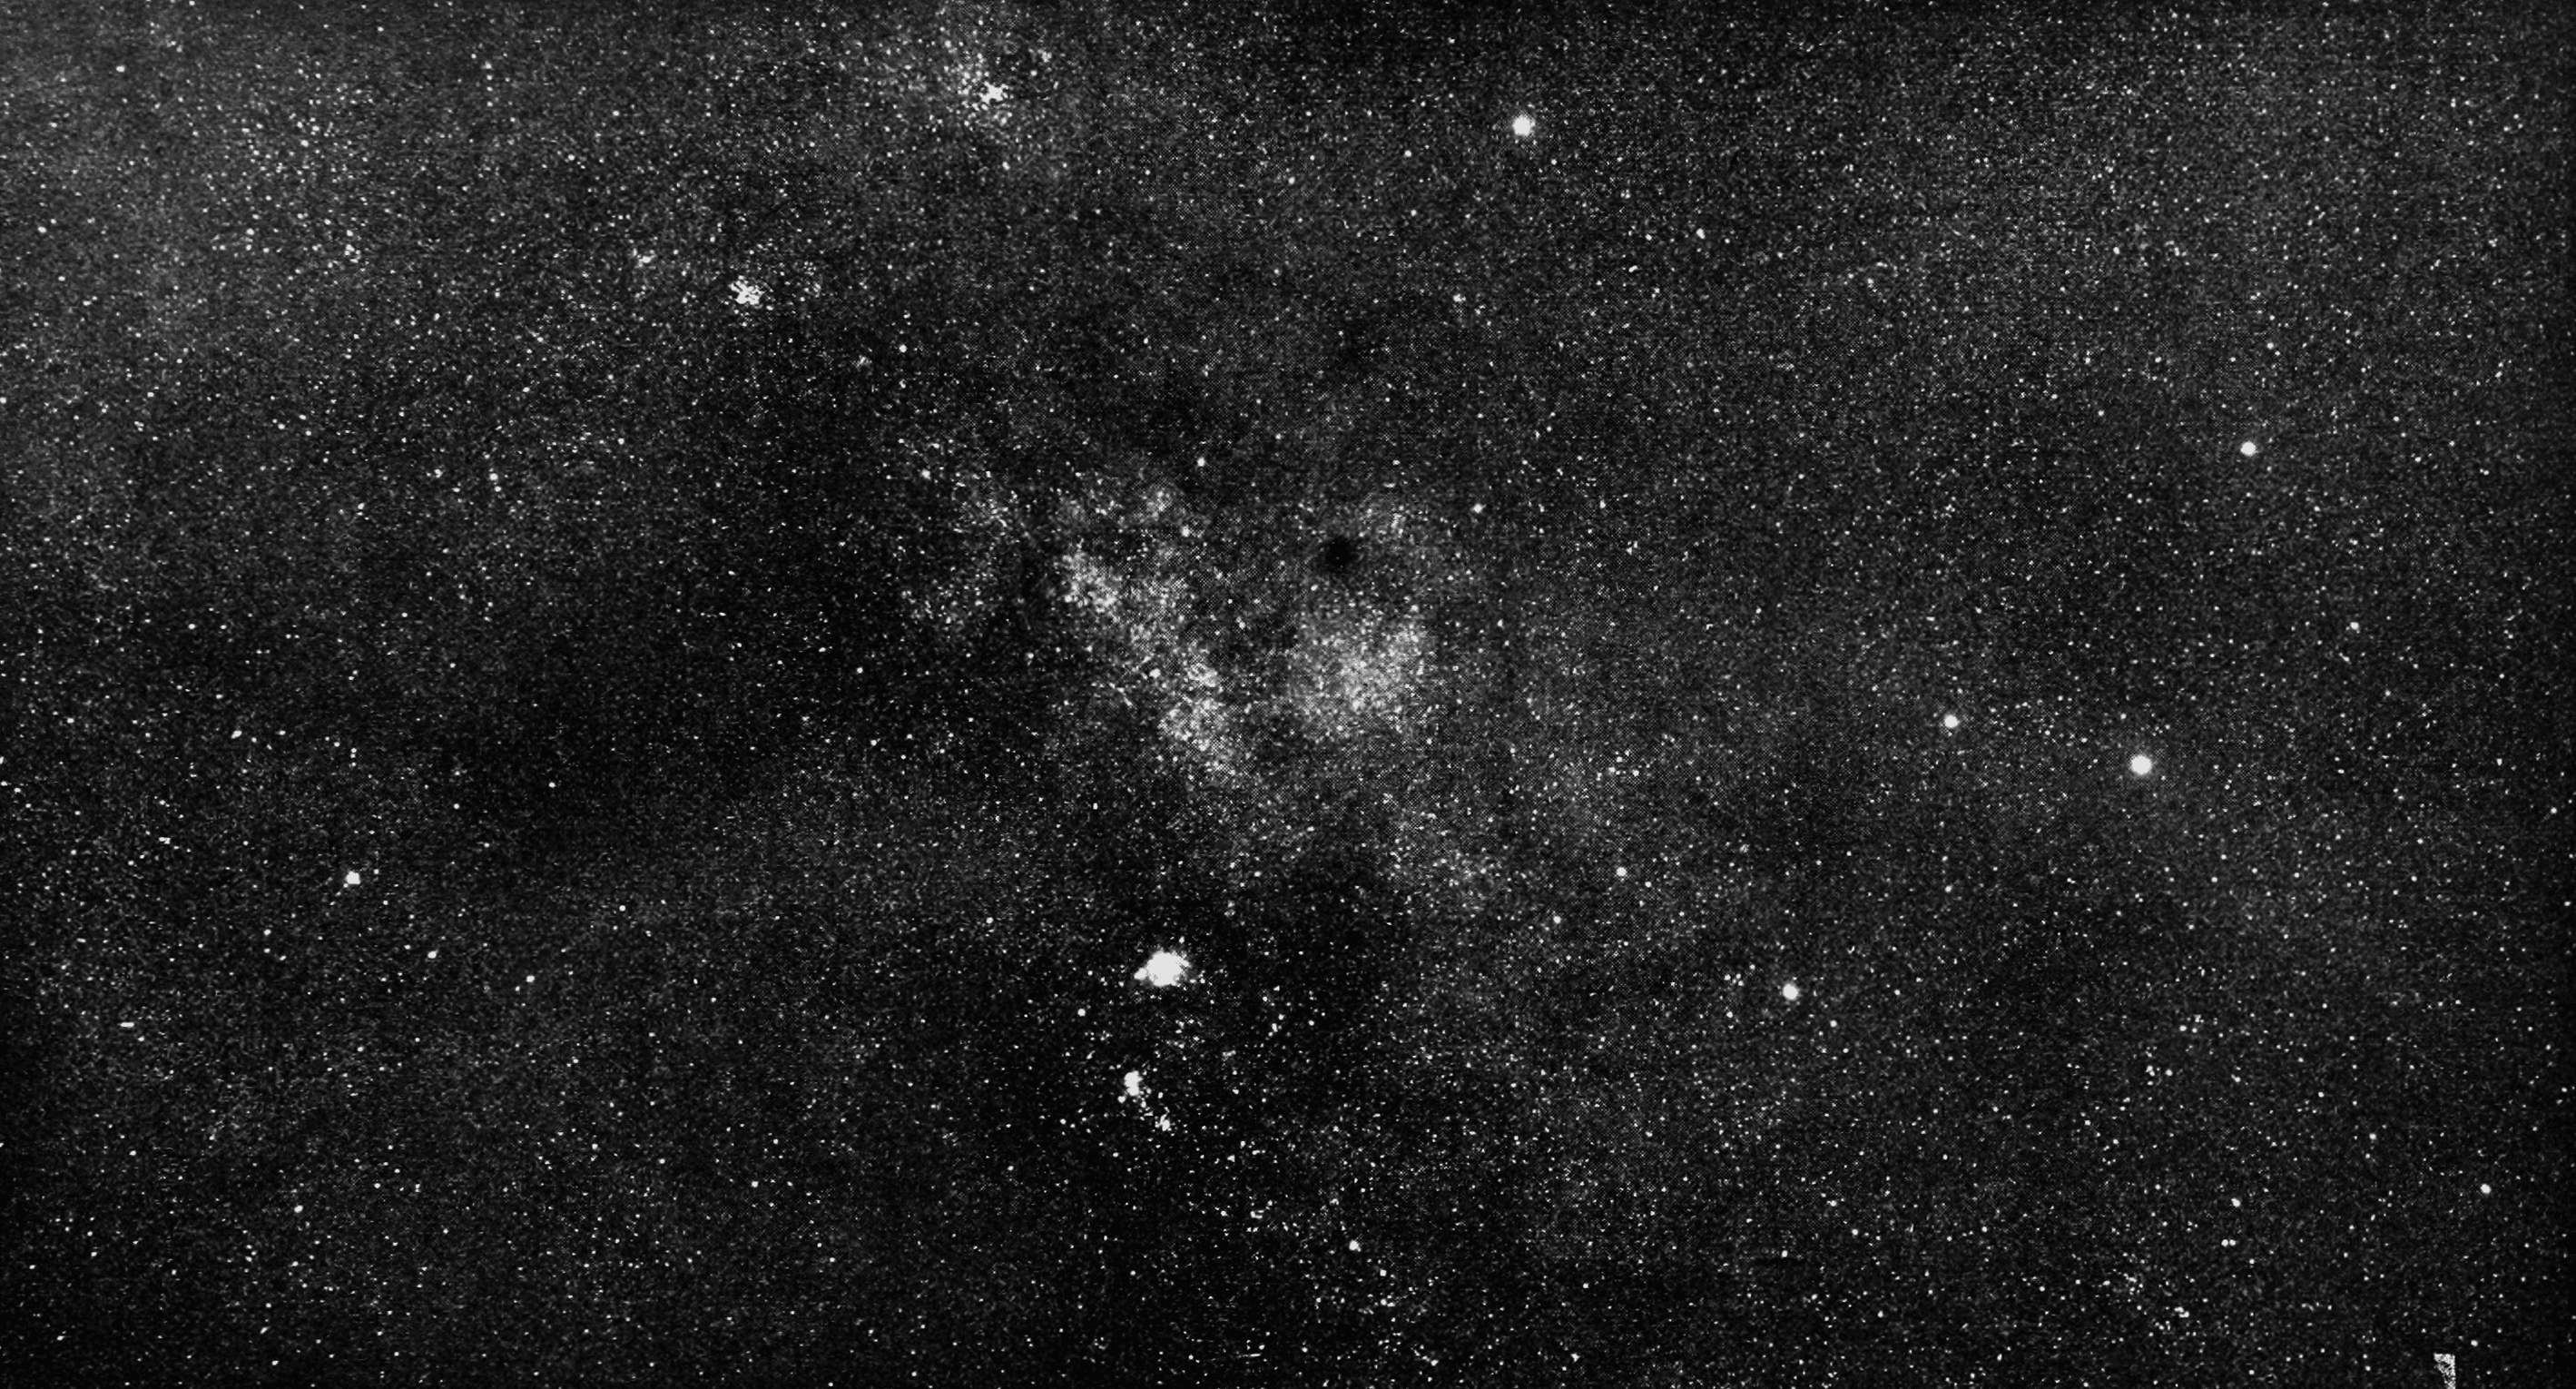 File:PSM V67 D766 Milky way in sagittarius and surrounding.